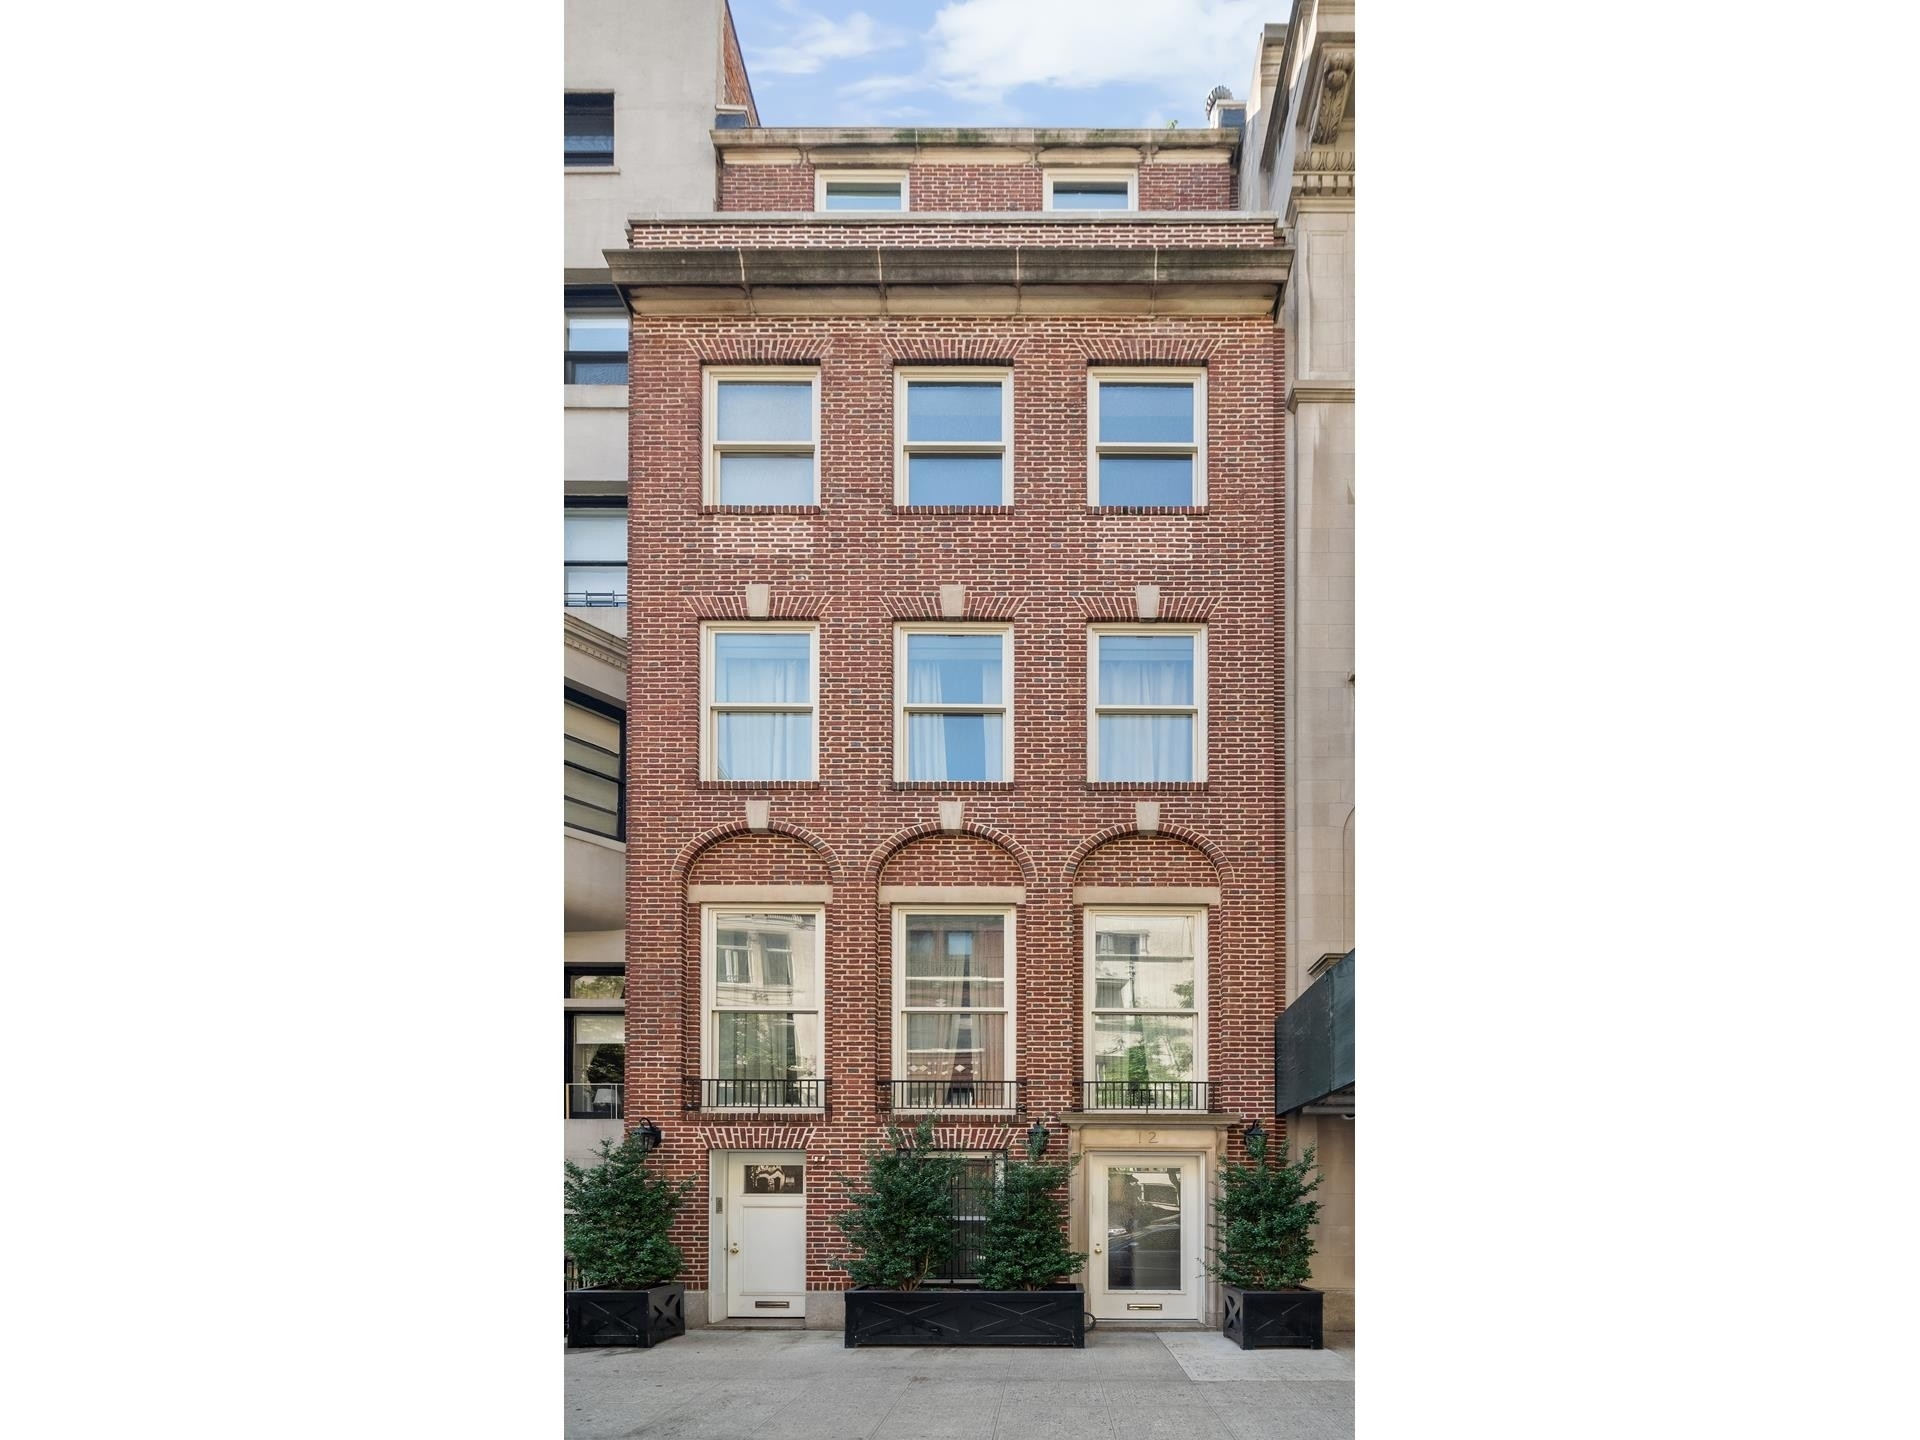 Single Family Townhouse for Sale at 12 E 80TH ST , TOWNHOUSE Upper East Side, New York, NY 10075